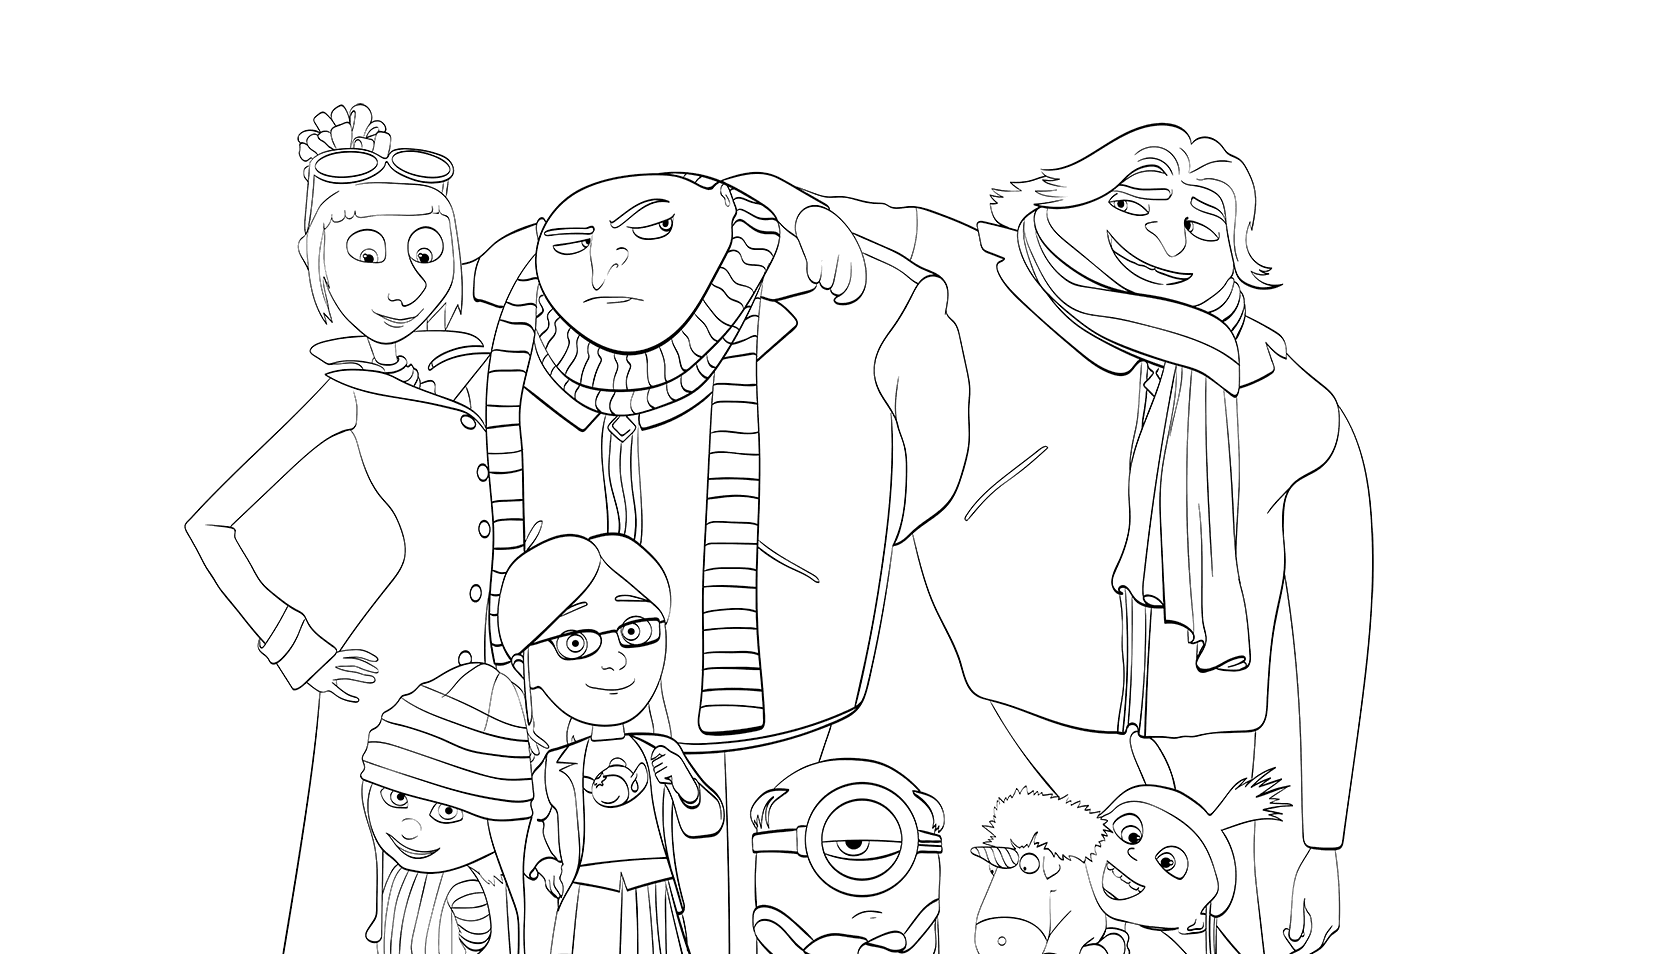 despicable me printables free printable despicable me coloring page round up printables despicable me